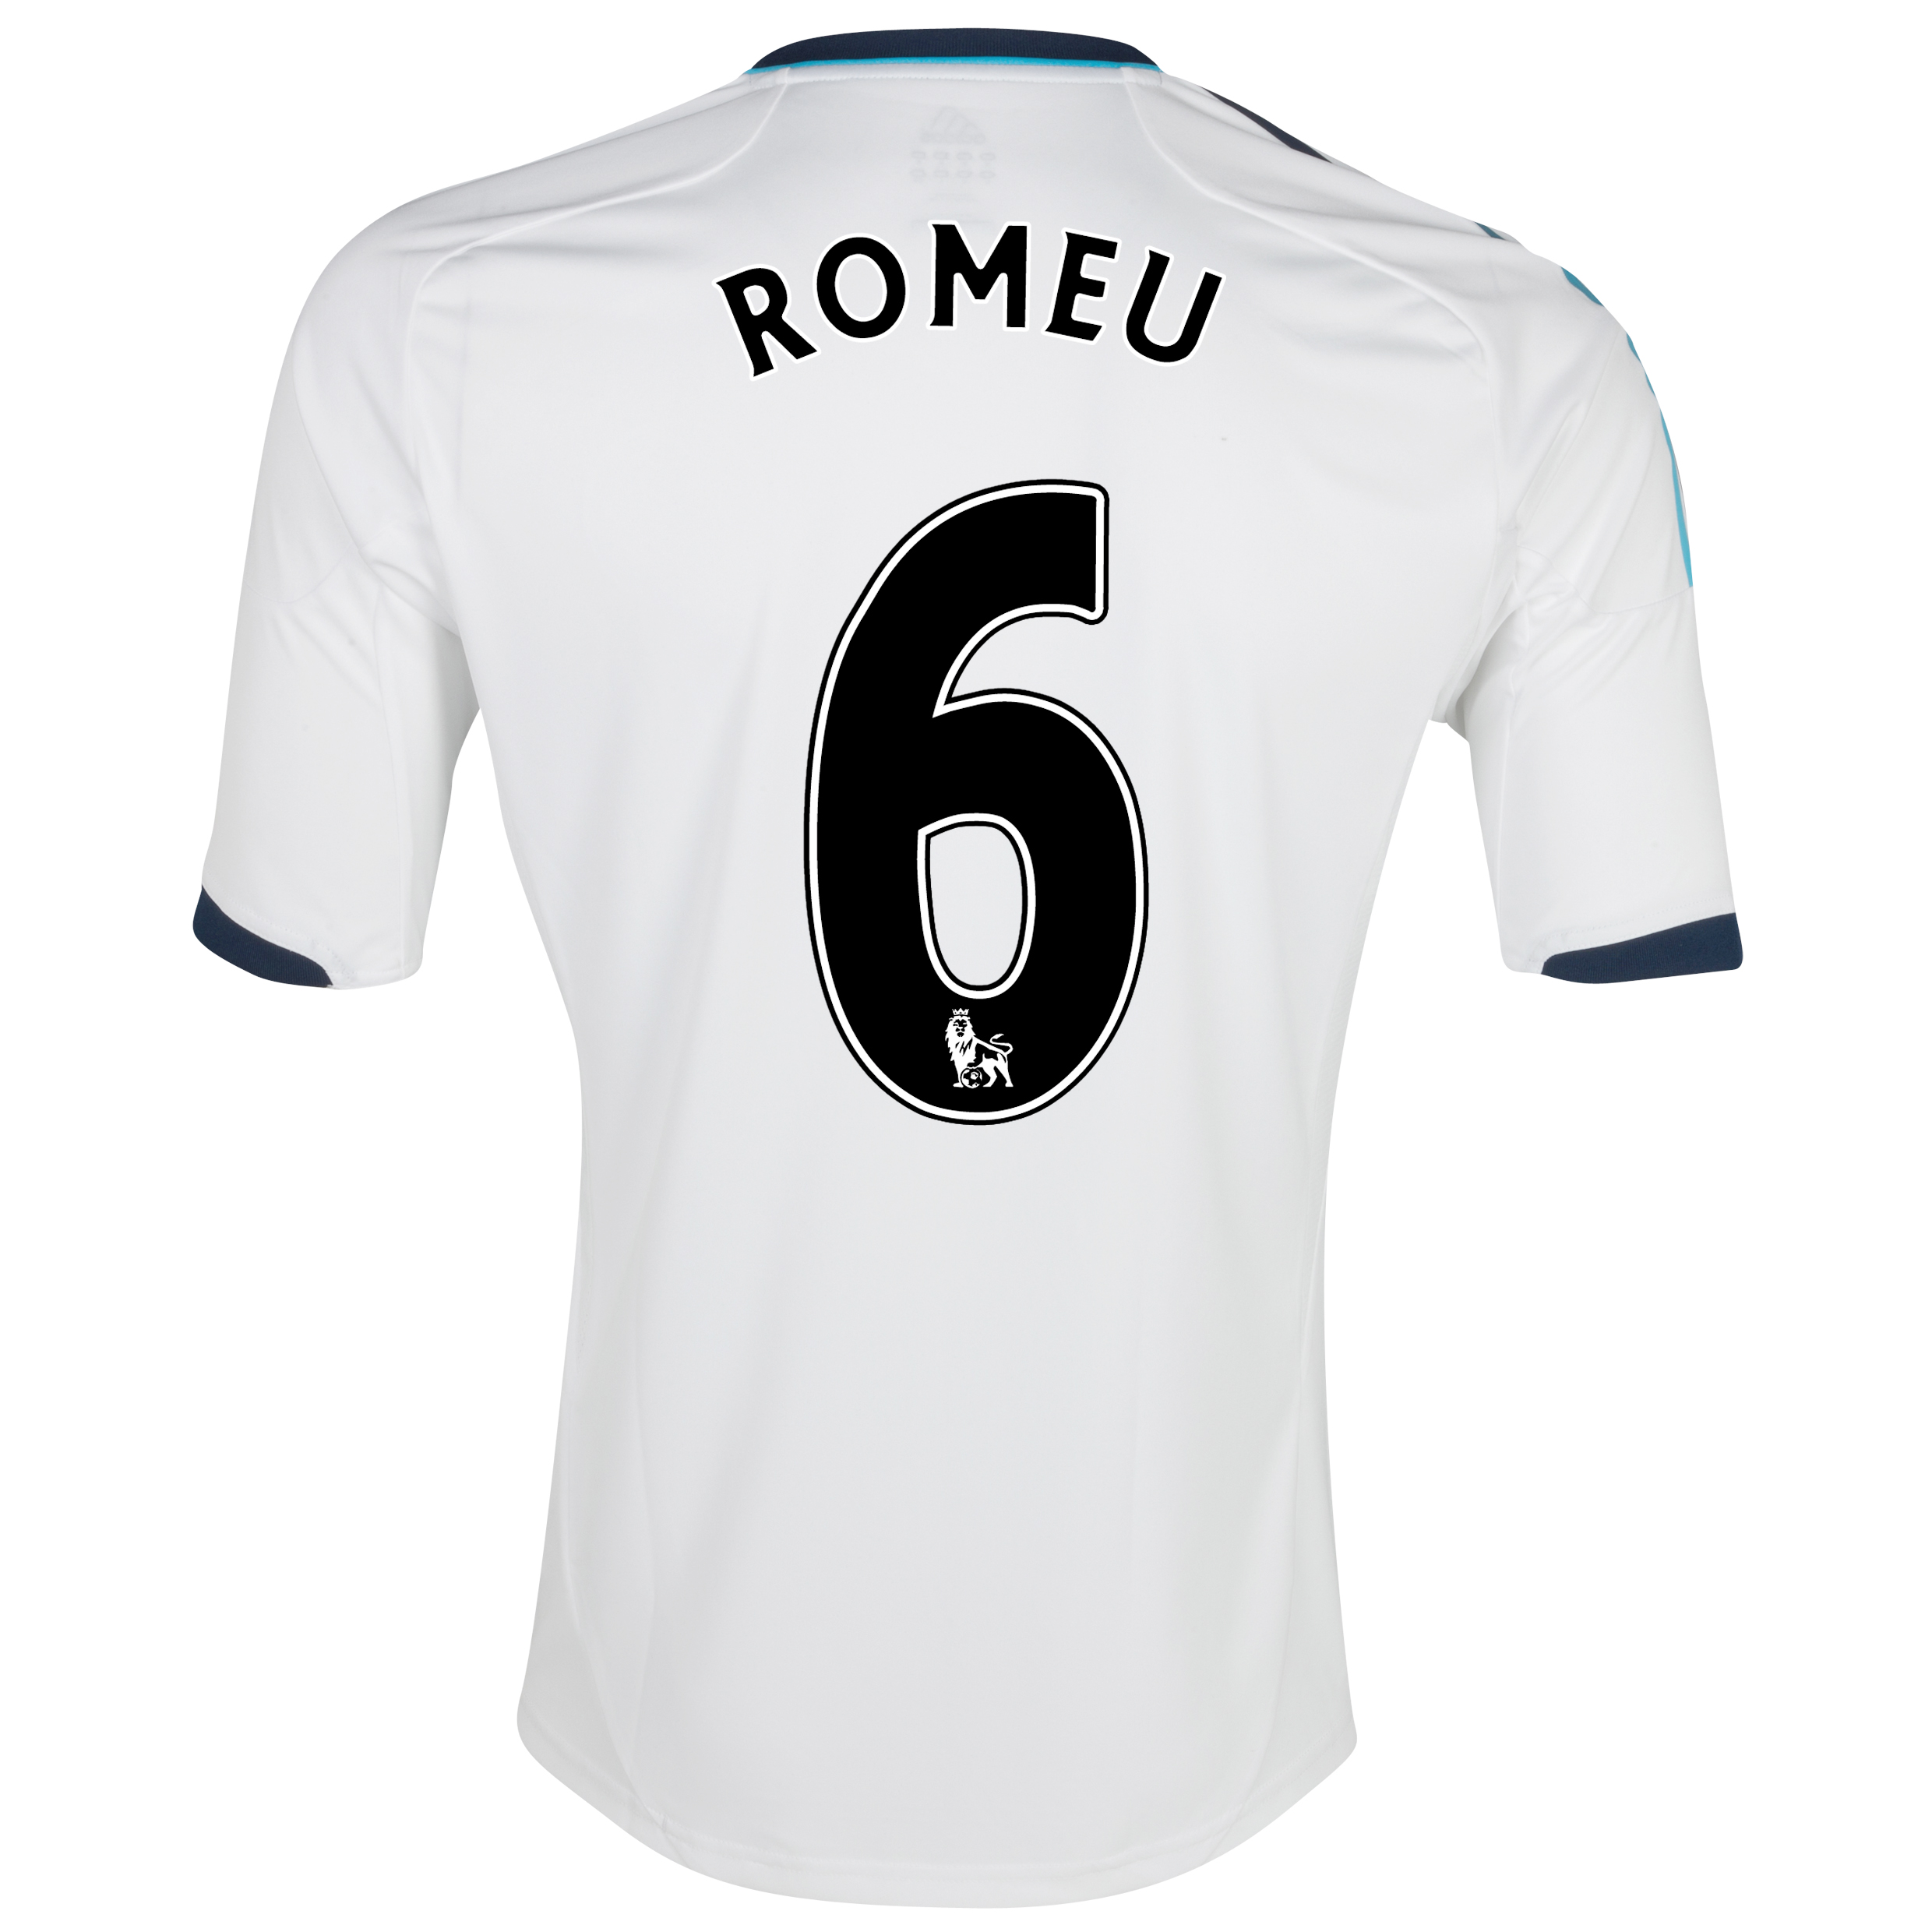 Chelsea Away Shirt 2012/13 - Youths with Romeu 6 printing